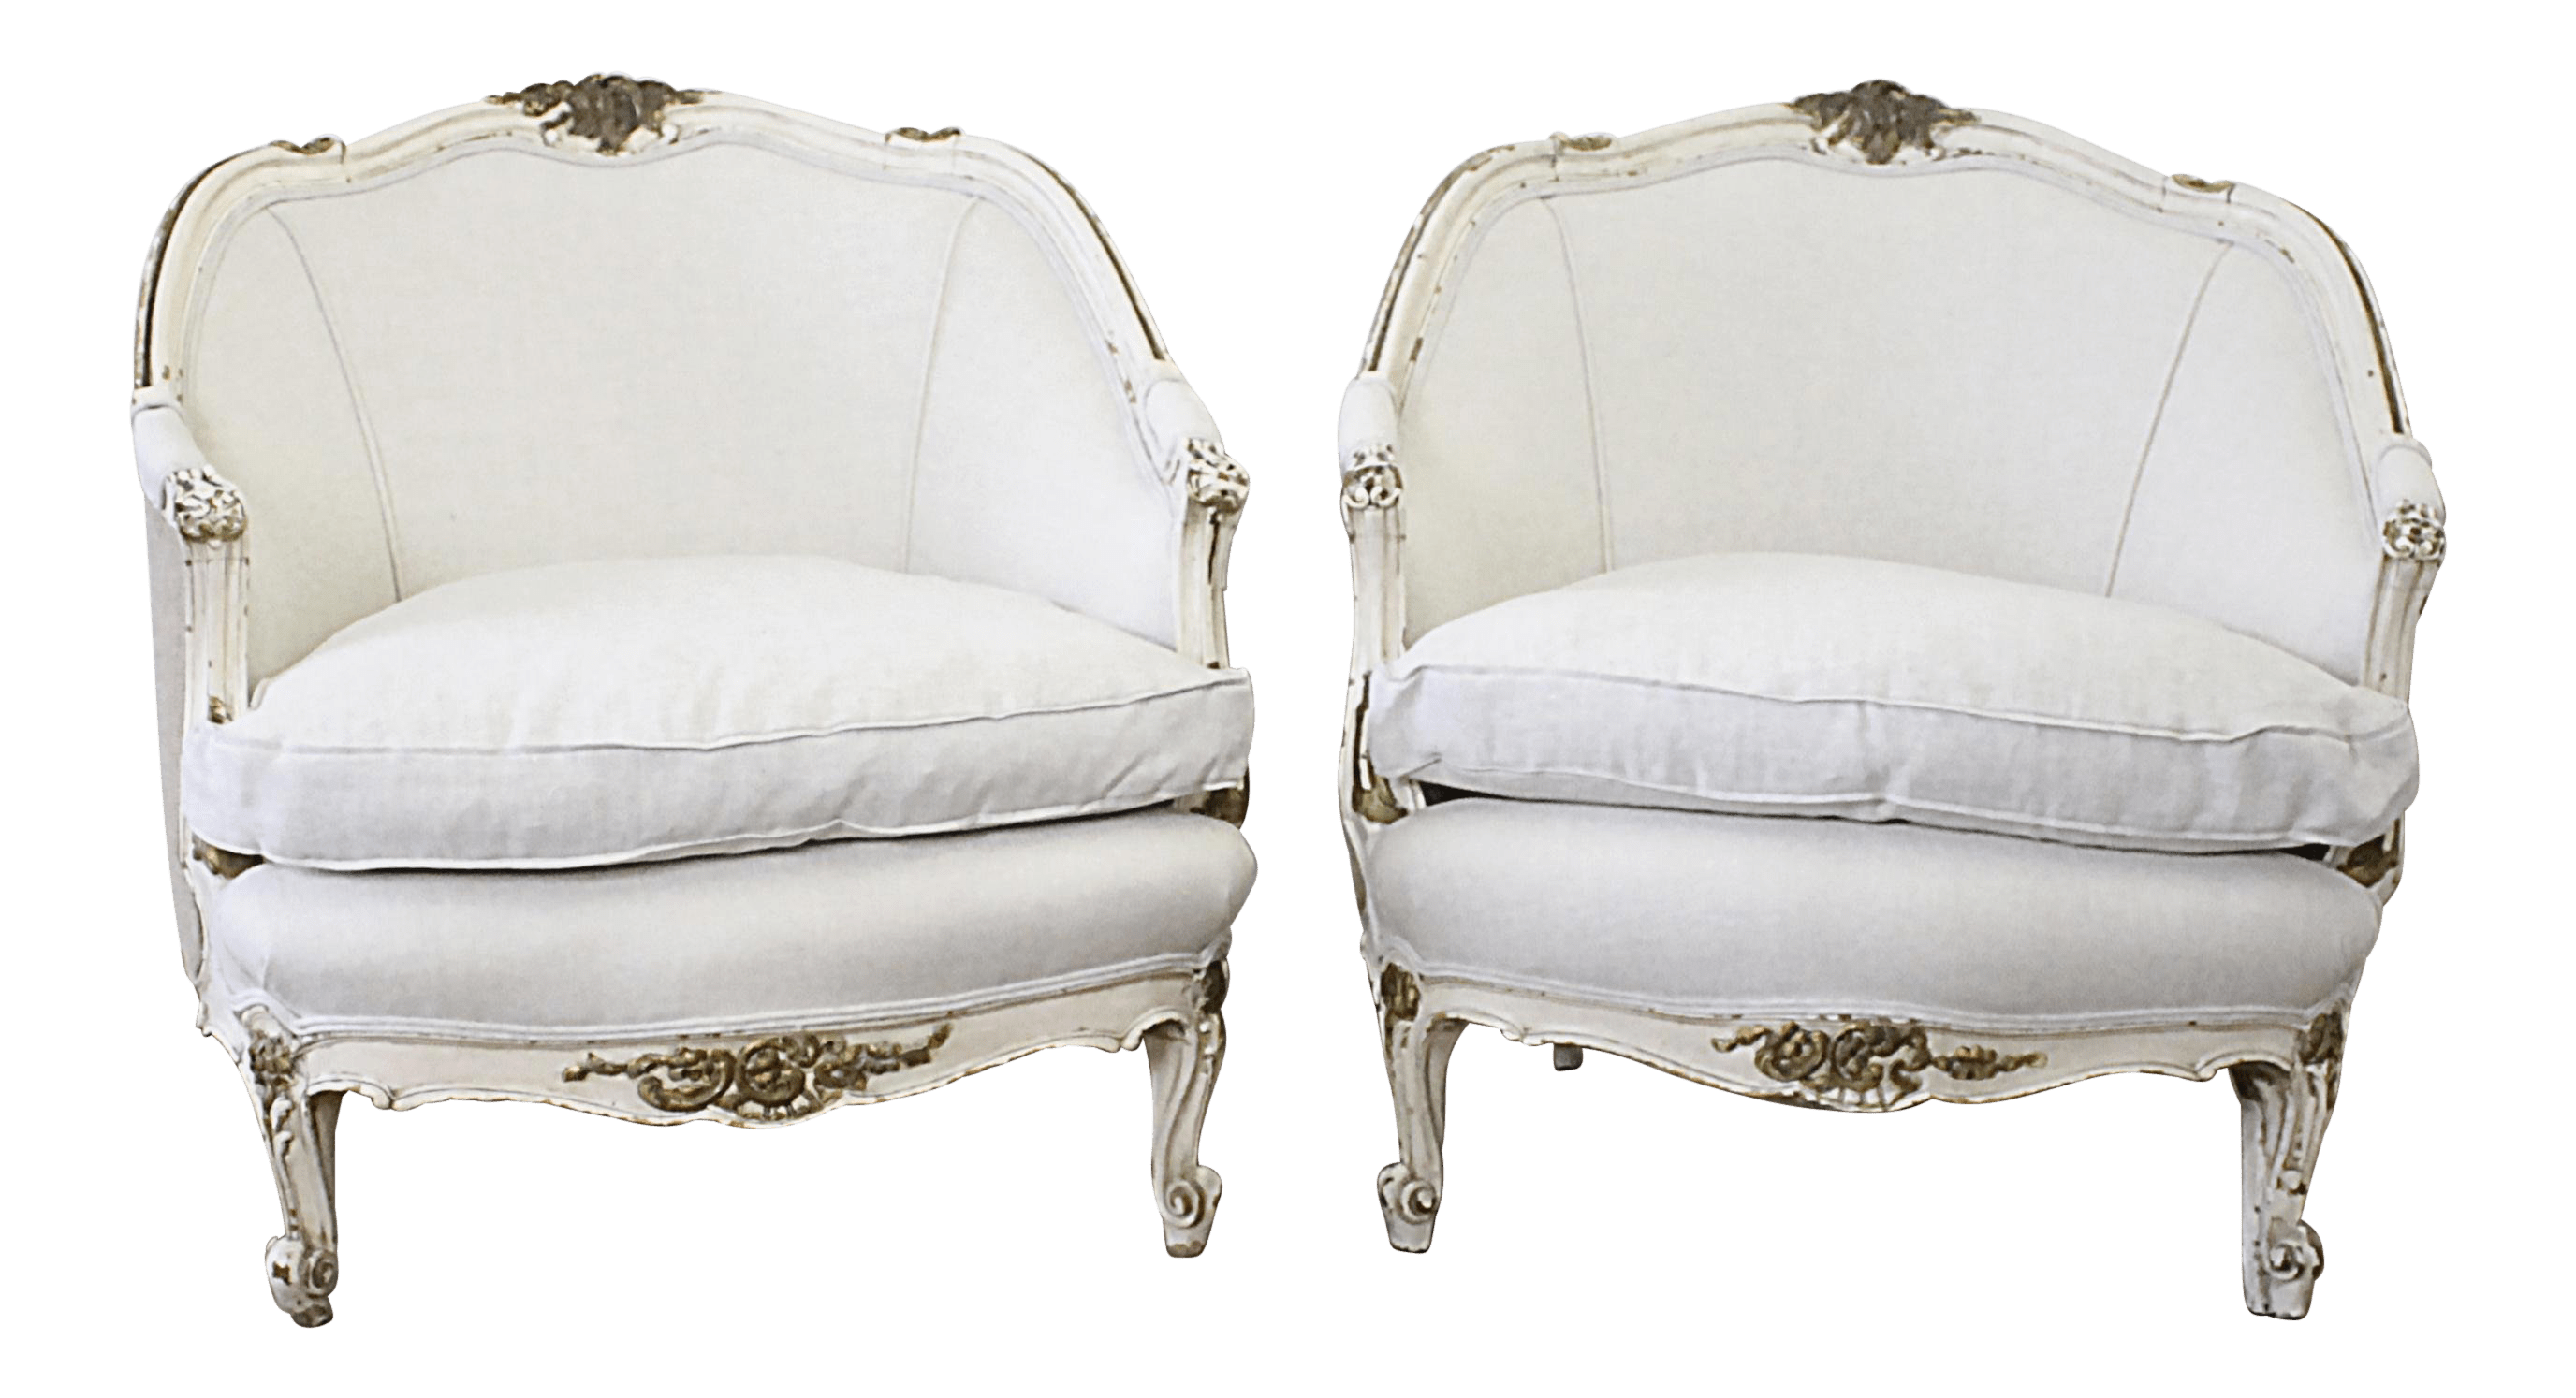 bergere dining chairs bistro patio vintage used for sale chairish mid century louis xv style original painted french a pair